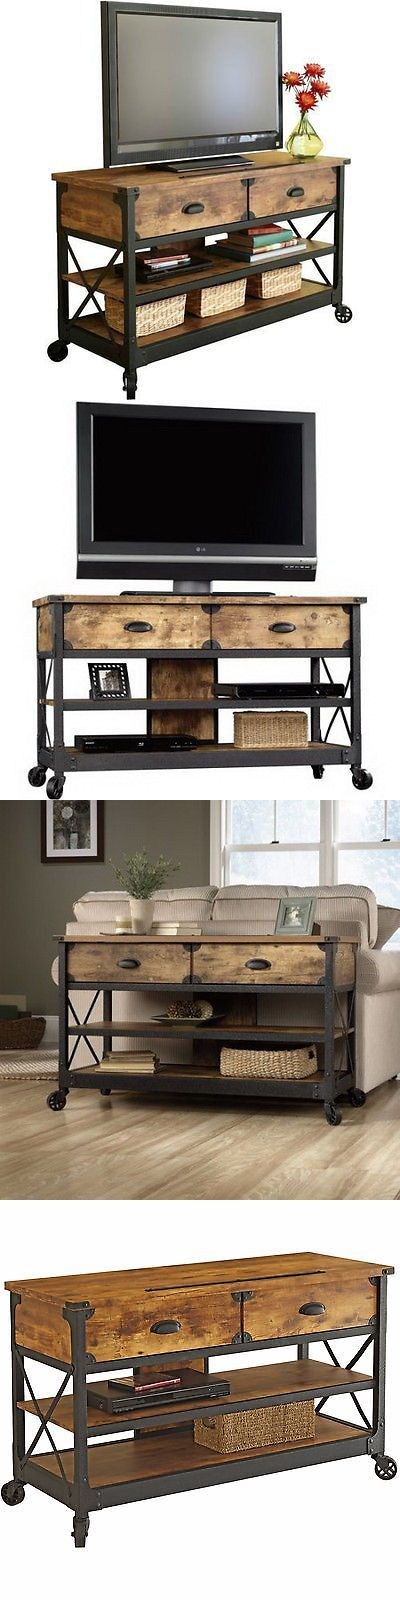 Entertainment Units TV Stands: Tv Stand Table Rustic Console Living Room Pine Industrial Media Cabinet Country BUY IT NOW ONLY: $196.95